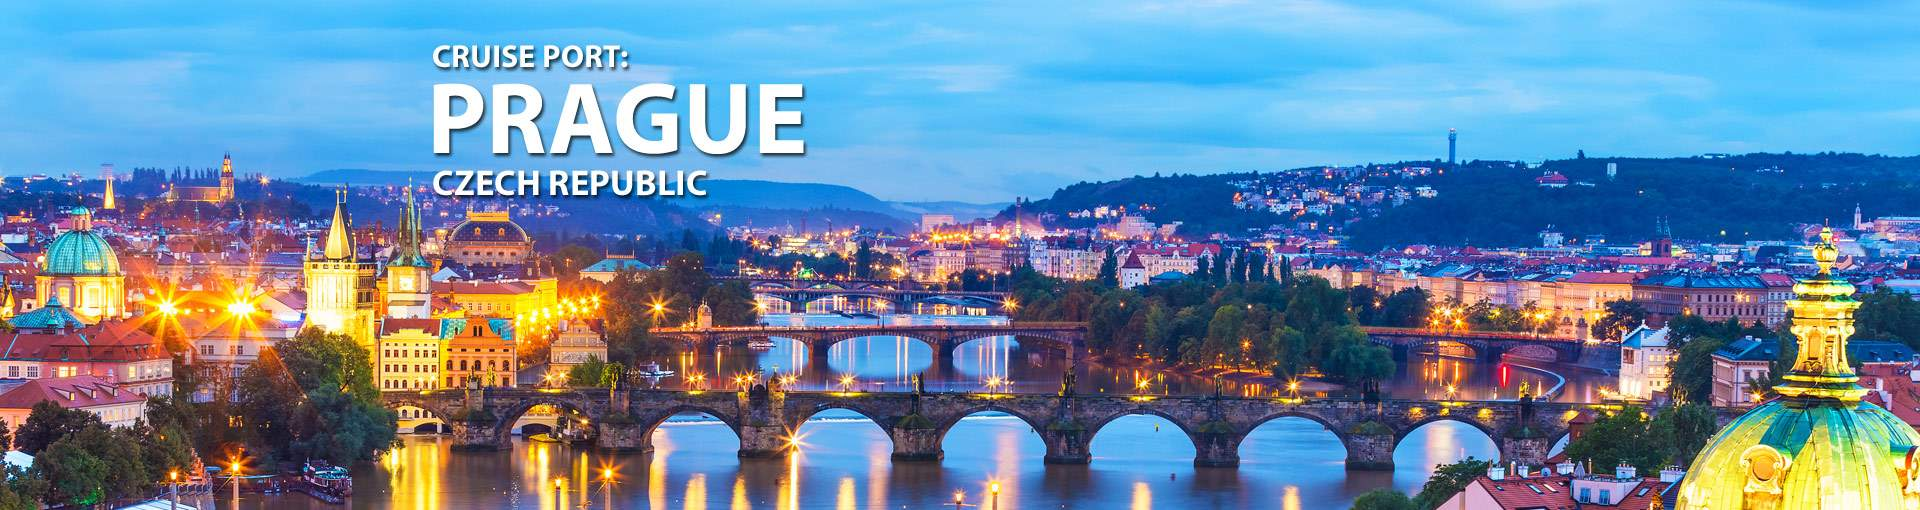 Cruises from Prague, Czech Republic